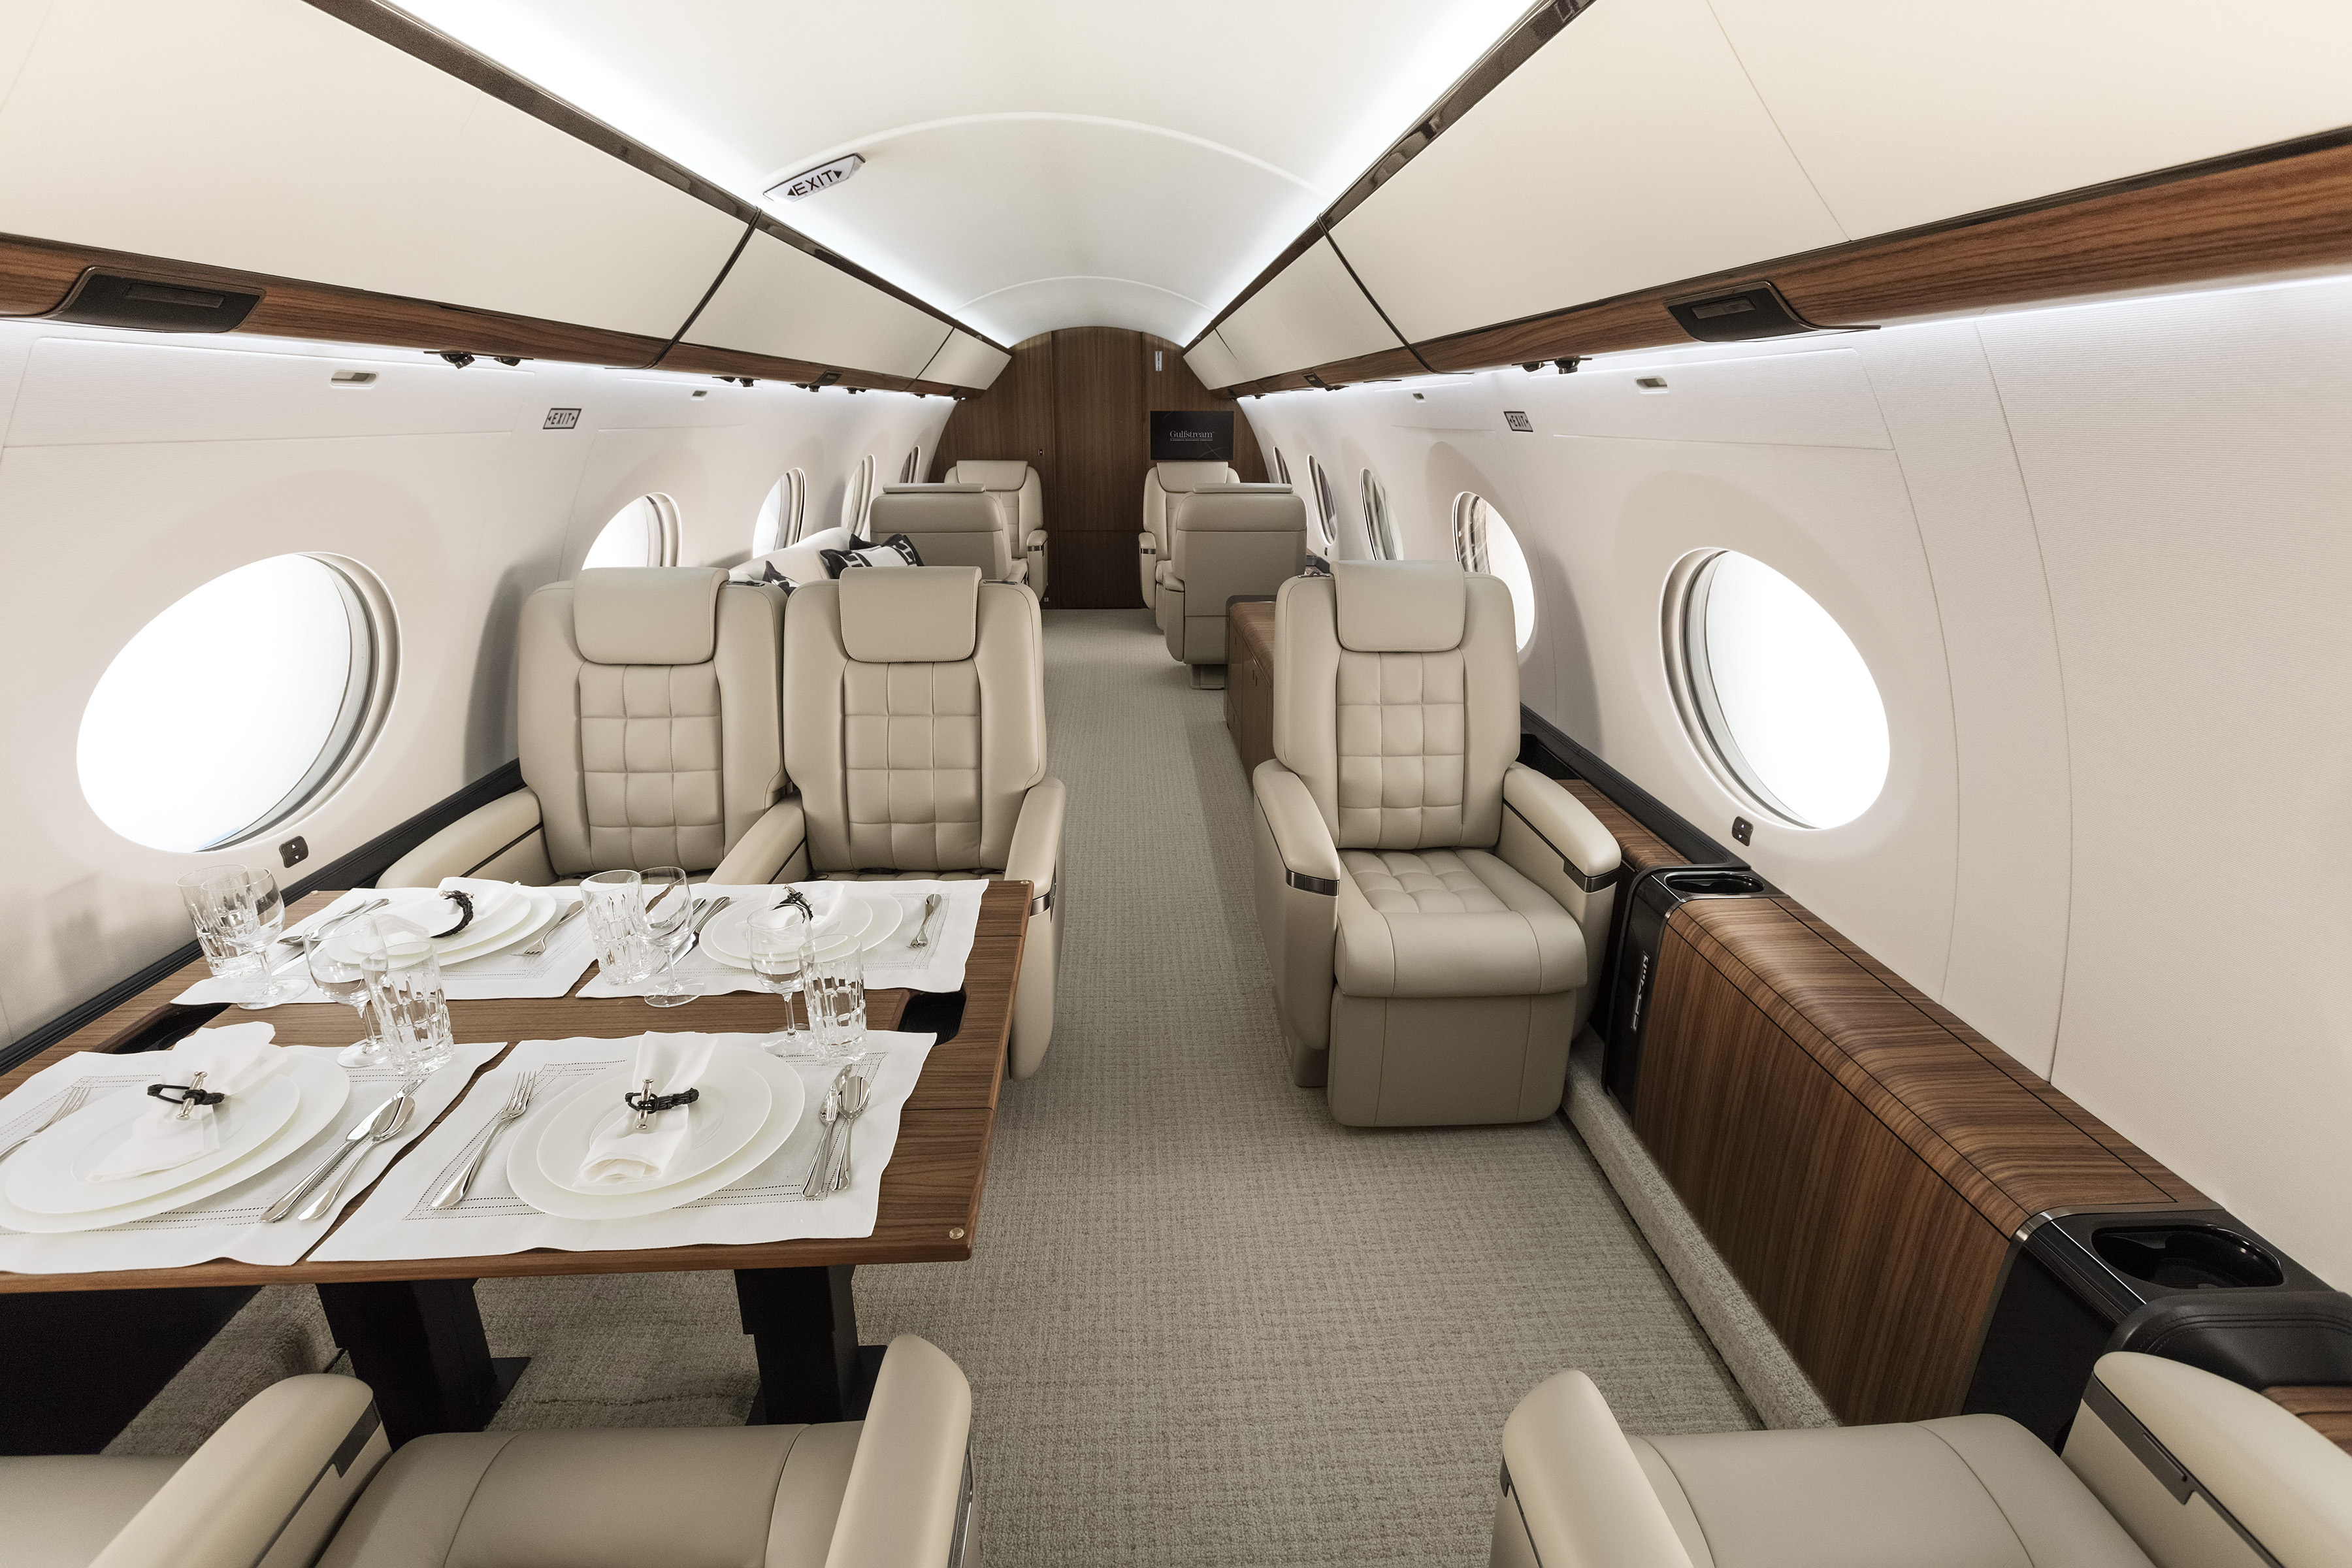 Gulfstream g650 interior images for Interior images